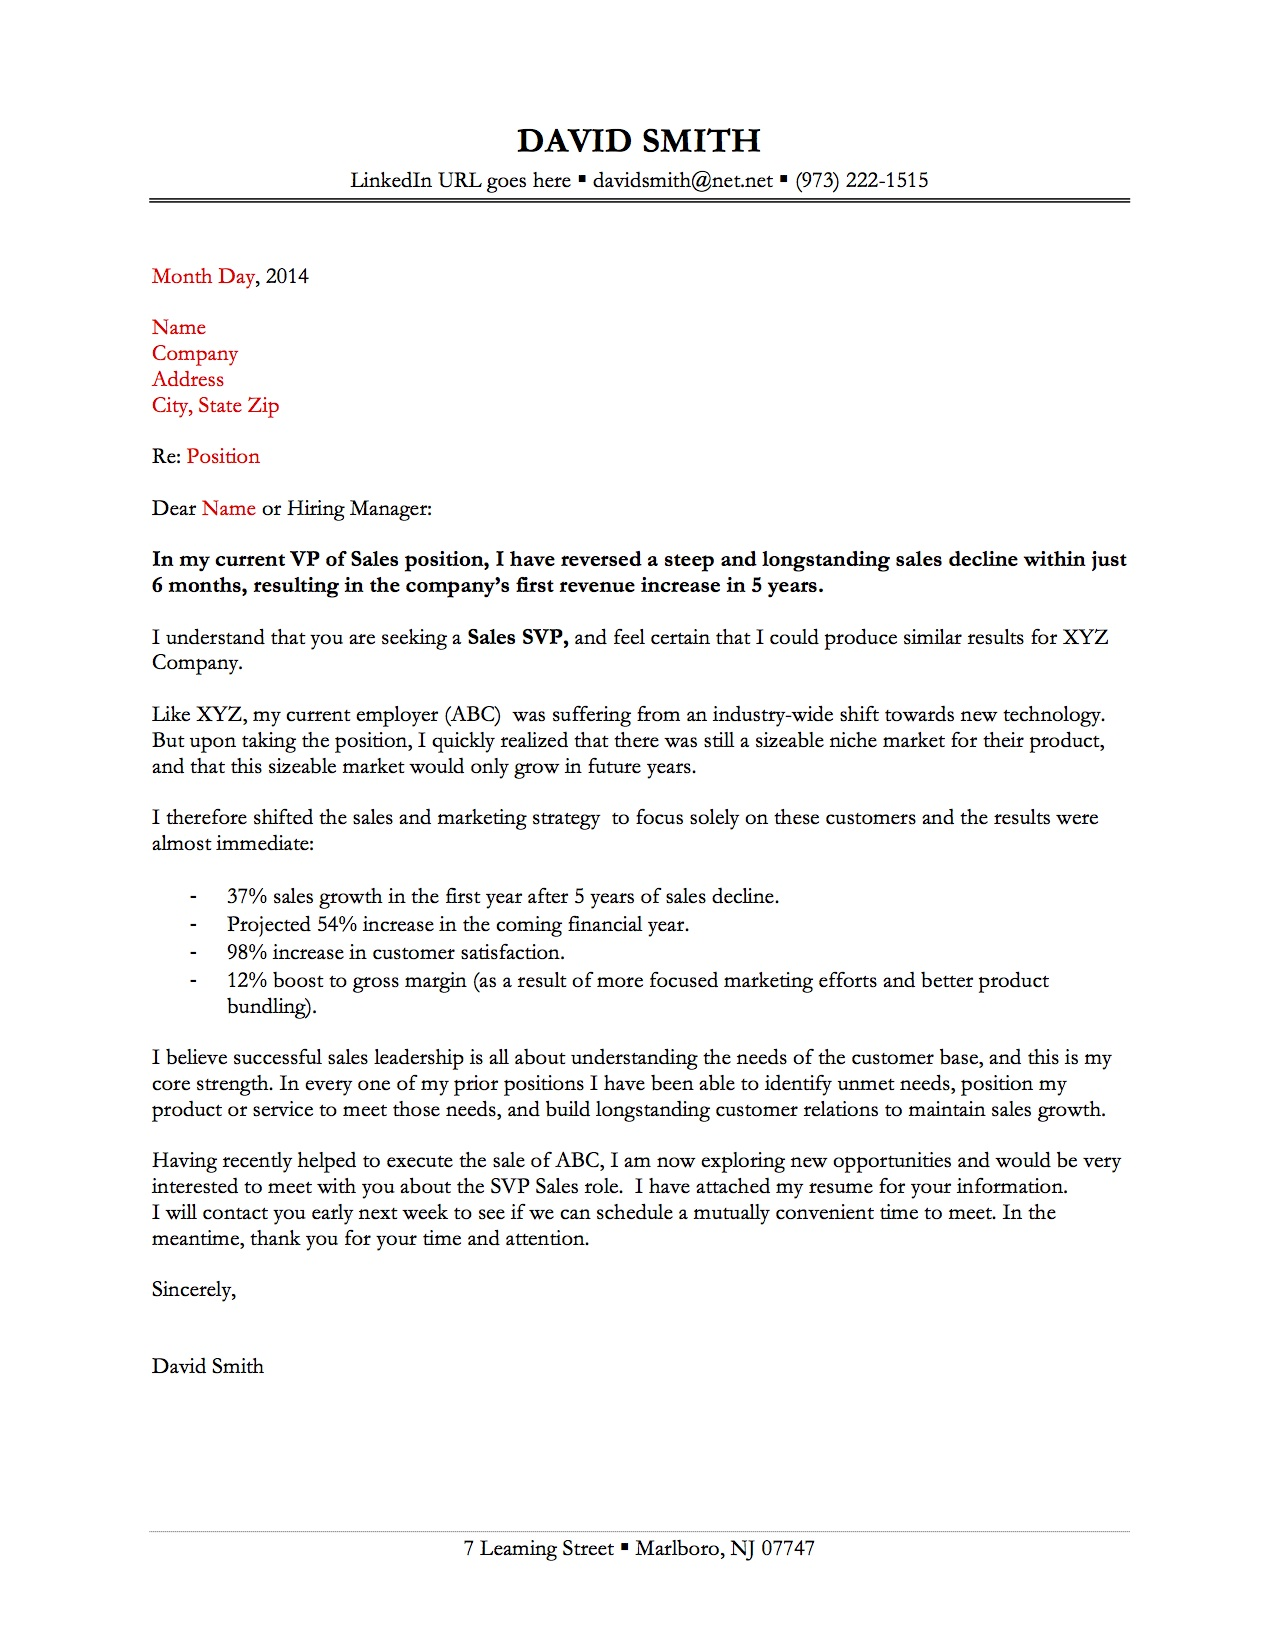 How To Write A Cover Letter To A Company Beauteous Two Great Cover Letter Examples  Blue Sky Resumes Blog